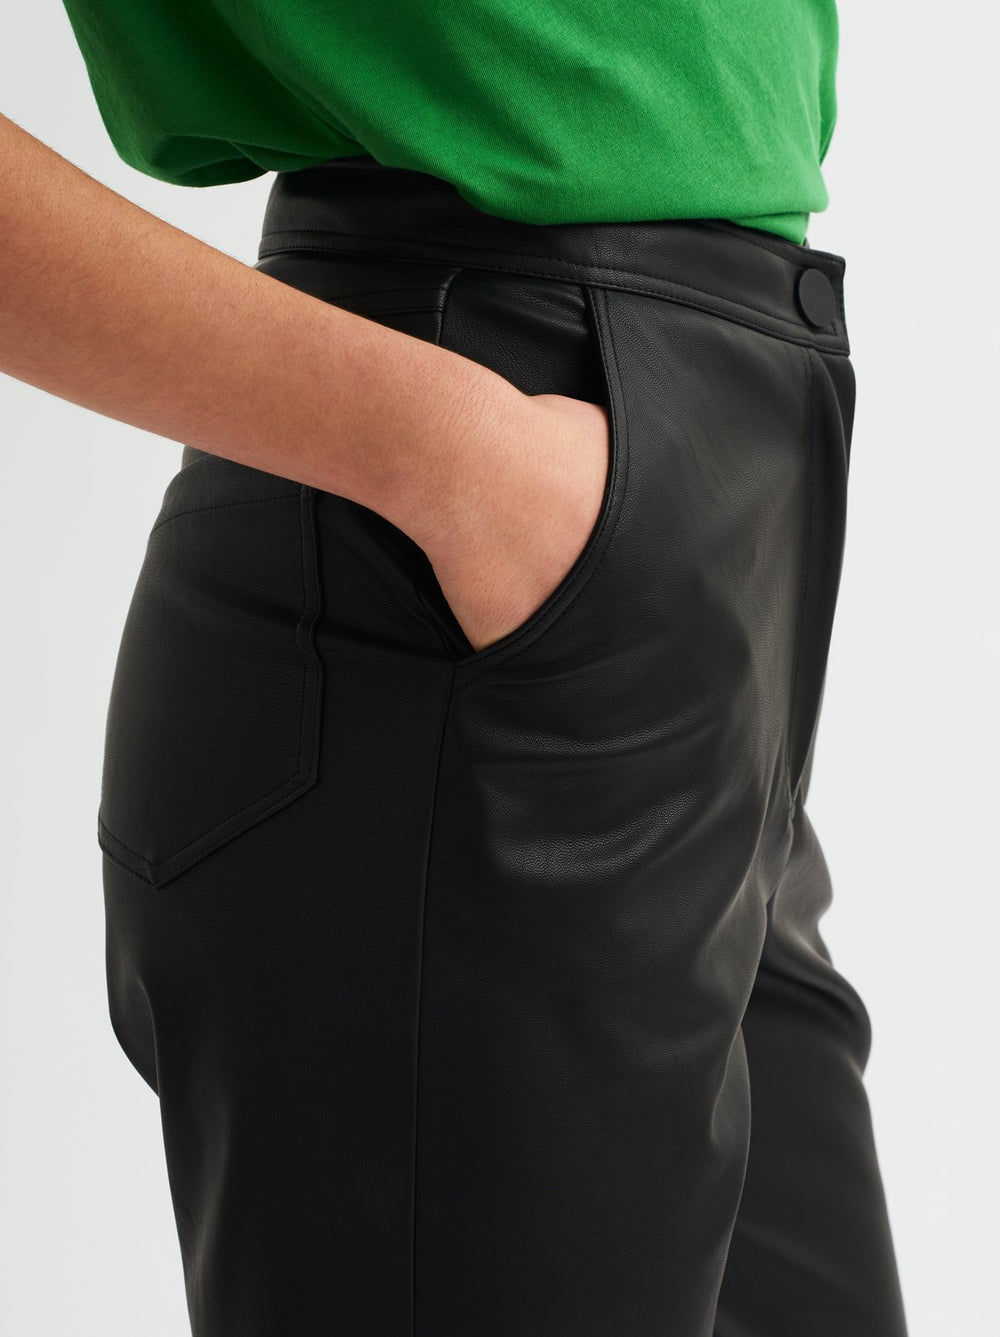 Calley Black Faux-leather PU Trousers by KITRI Studio